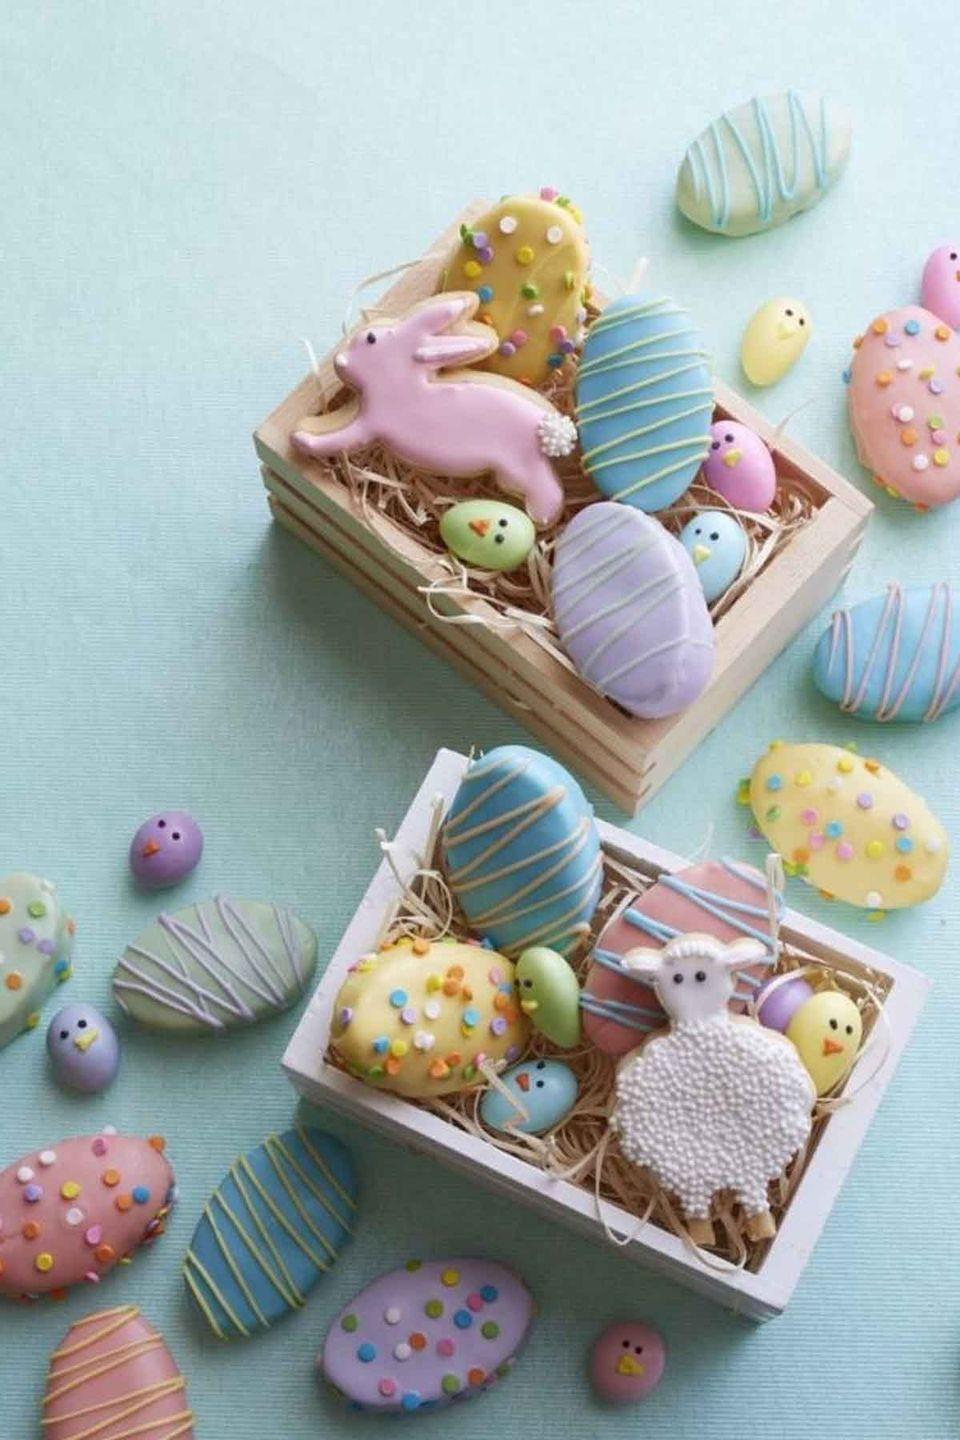 """<p>These mini cakes can be decorated in the prettiest pastel Easter colors, and they'll be adored by your guests. </p><p><strong><em><a href=""""https://www.womansday.com/food-recipes/recipes/a53965/mini-vanilla-egg-cakes-recipe/"""" rel=""""nofollow noopener"""" target=""""_blank"""" data-ylk=""""slk:Get the Mini Vanilla Egg Cakes recipe."""" class=""""link rapid-noclick-resp"""">Get the Mini Vanilla Egg Cakes recipe. </a></em></strong></p>"""